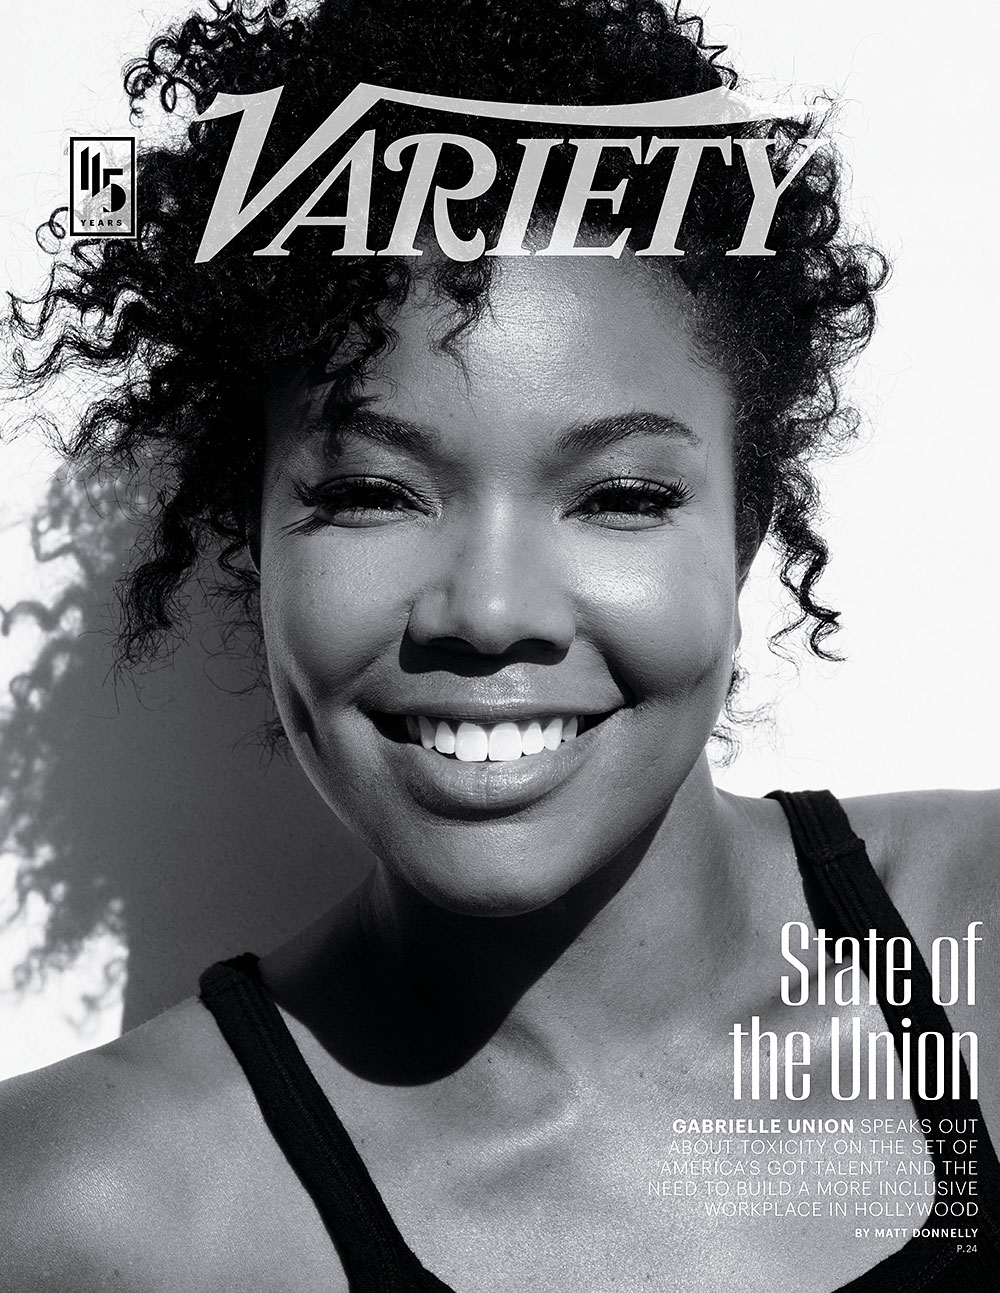 Gabrielle Union on the cover of Variety